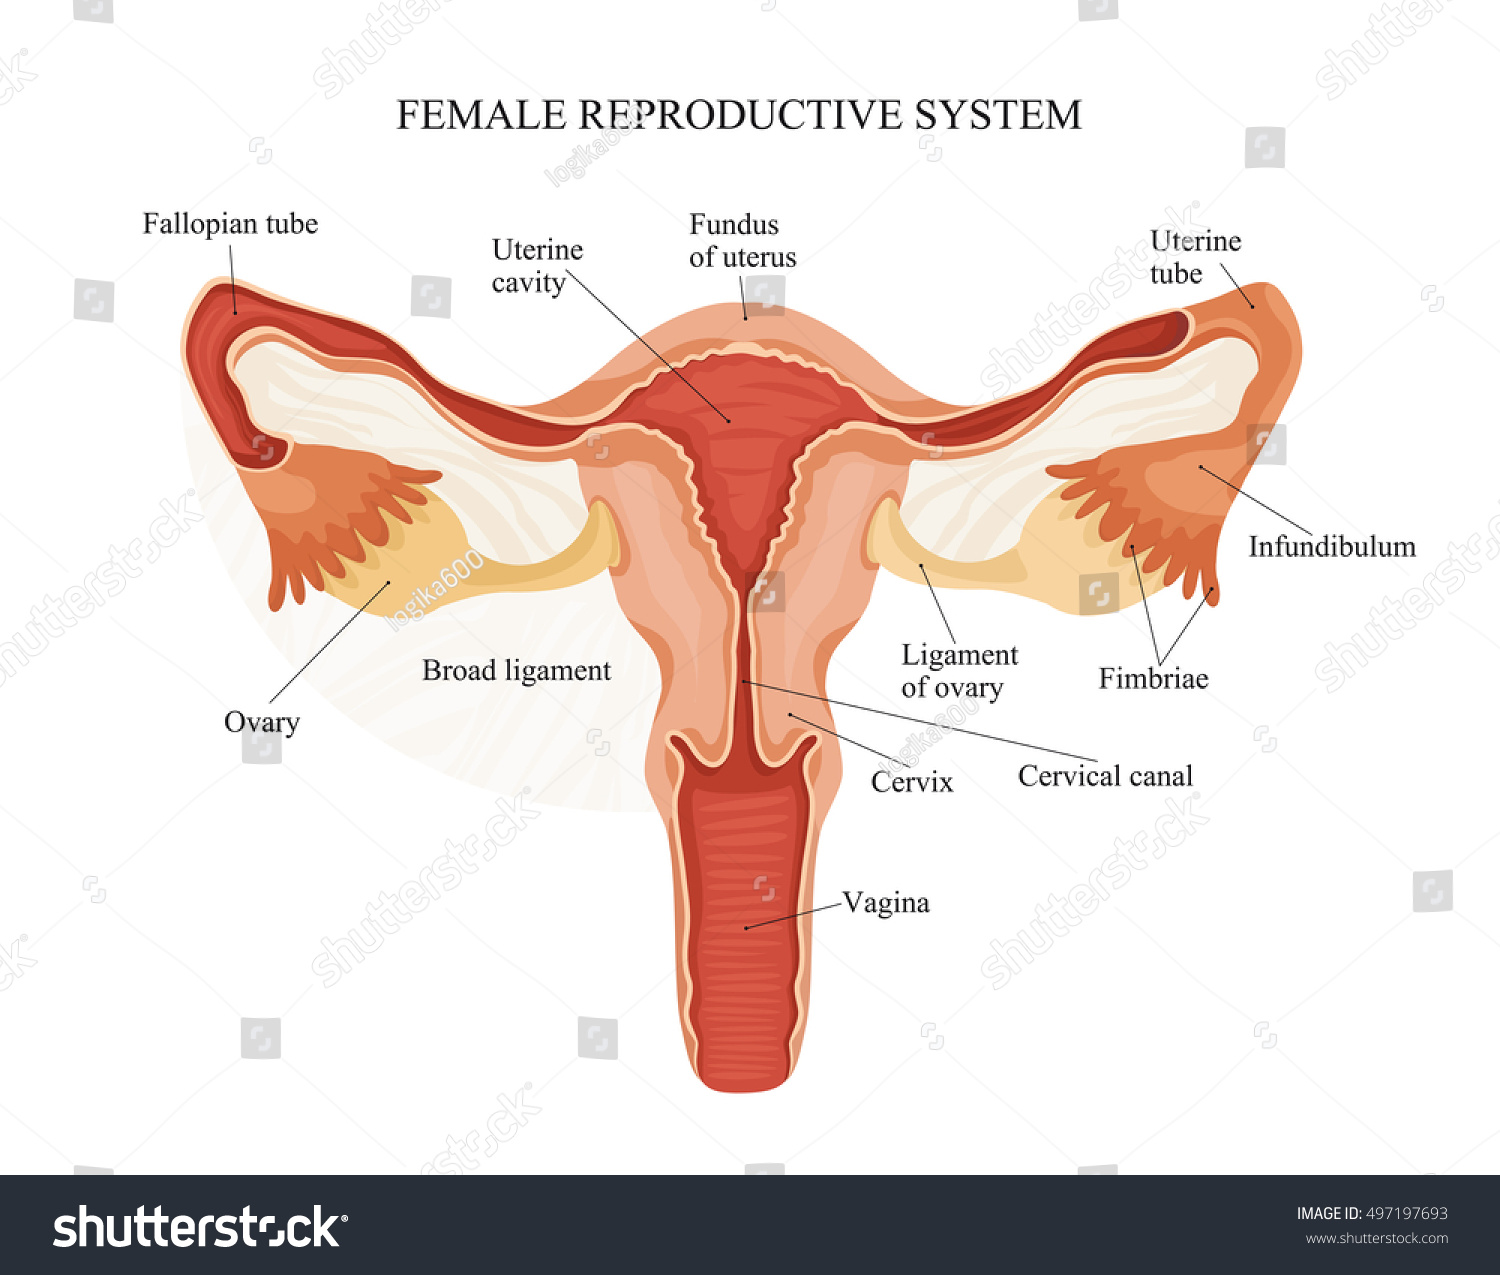 Illustration Female Reproductive System Human Anatomy Stock ...